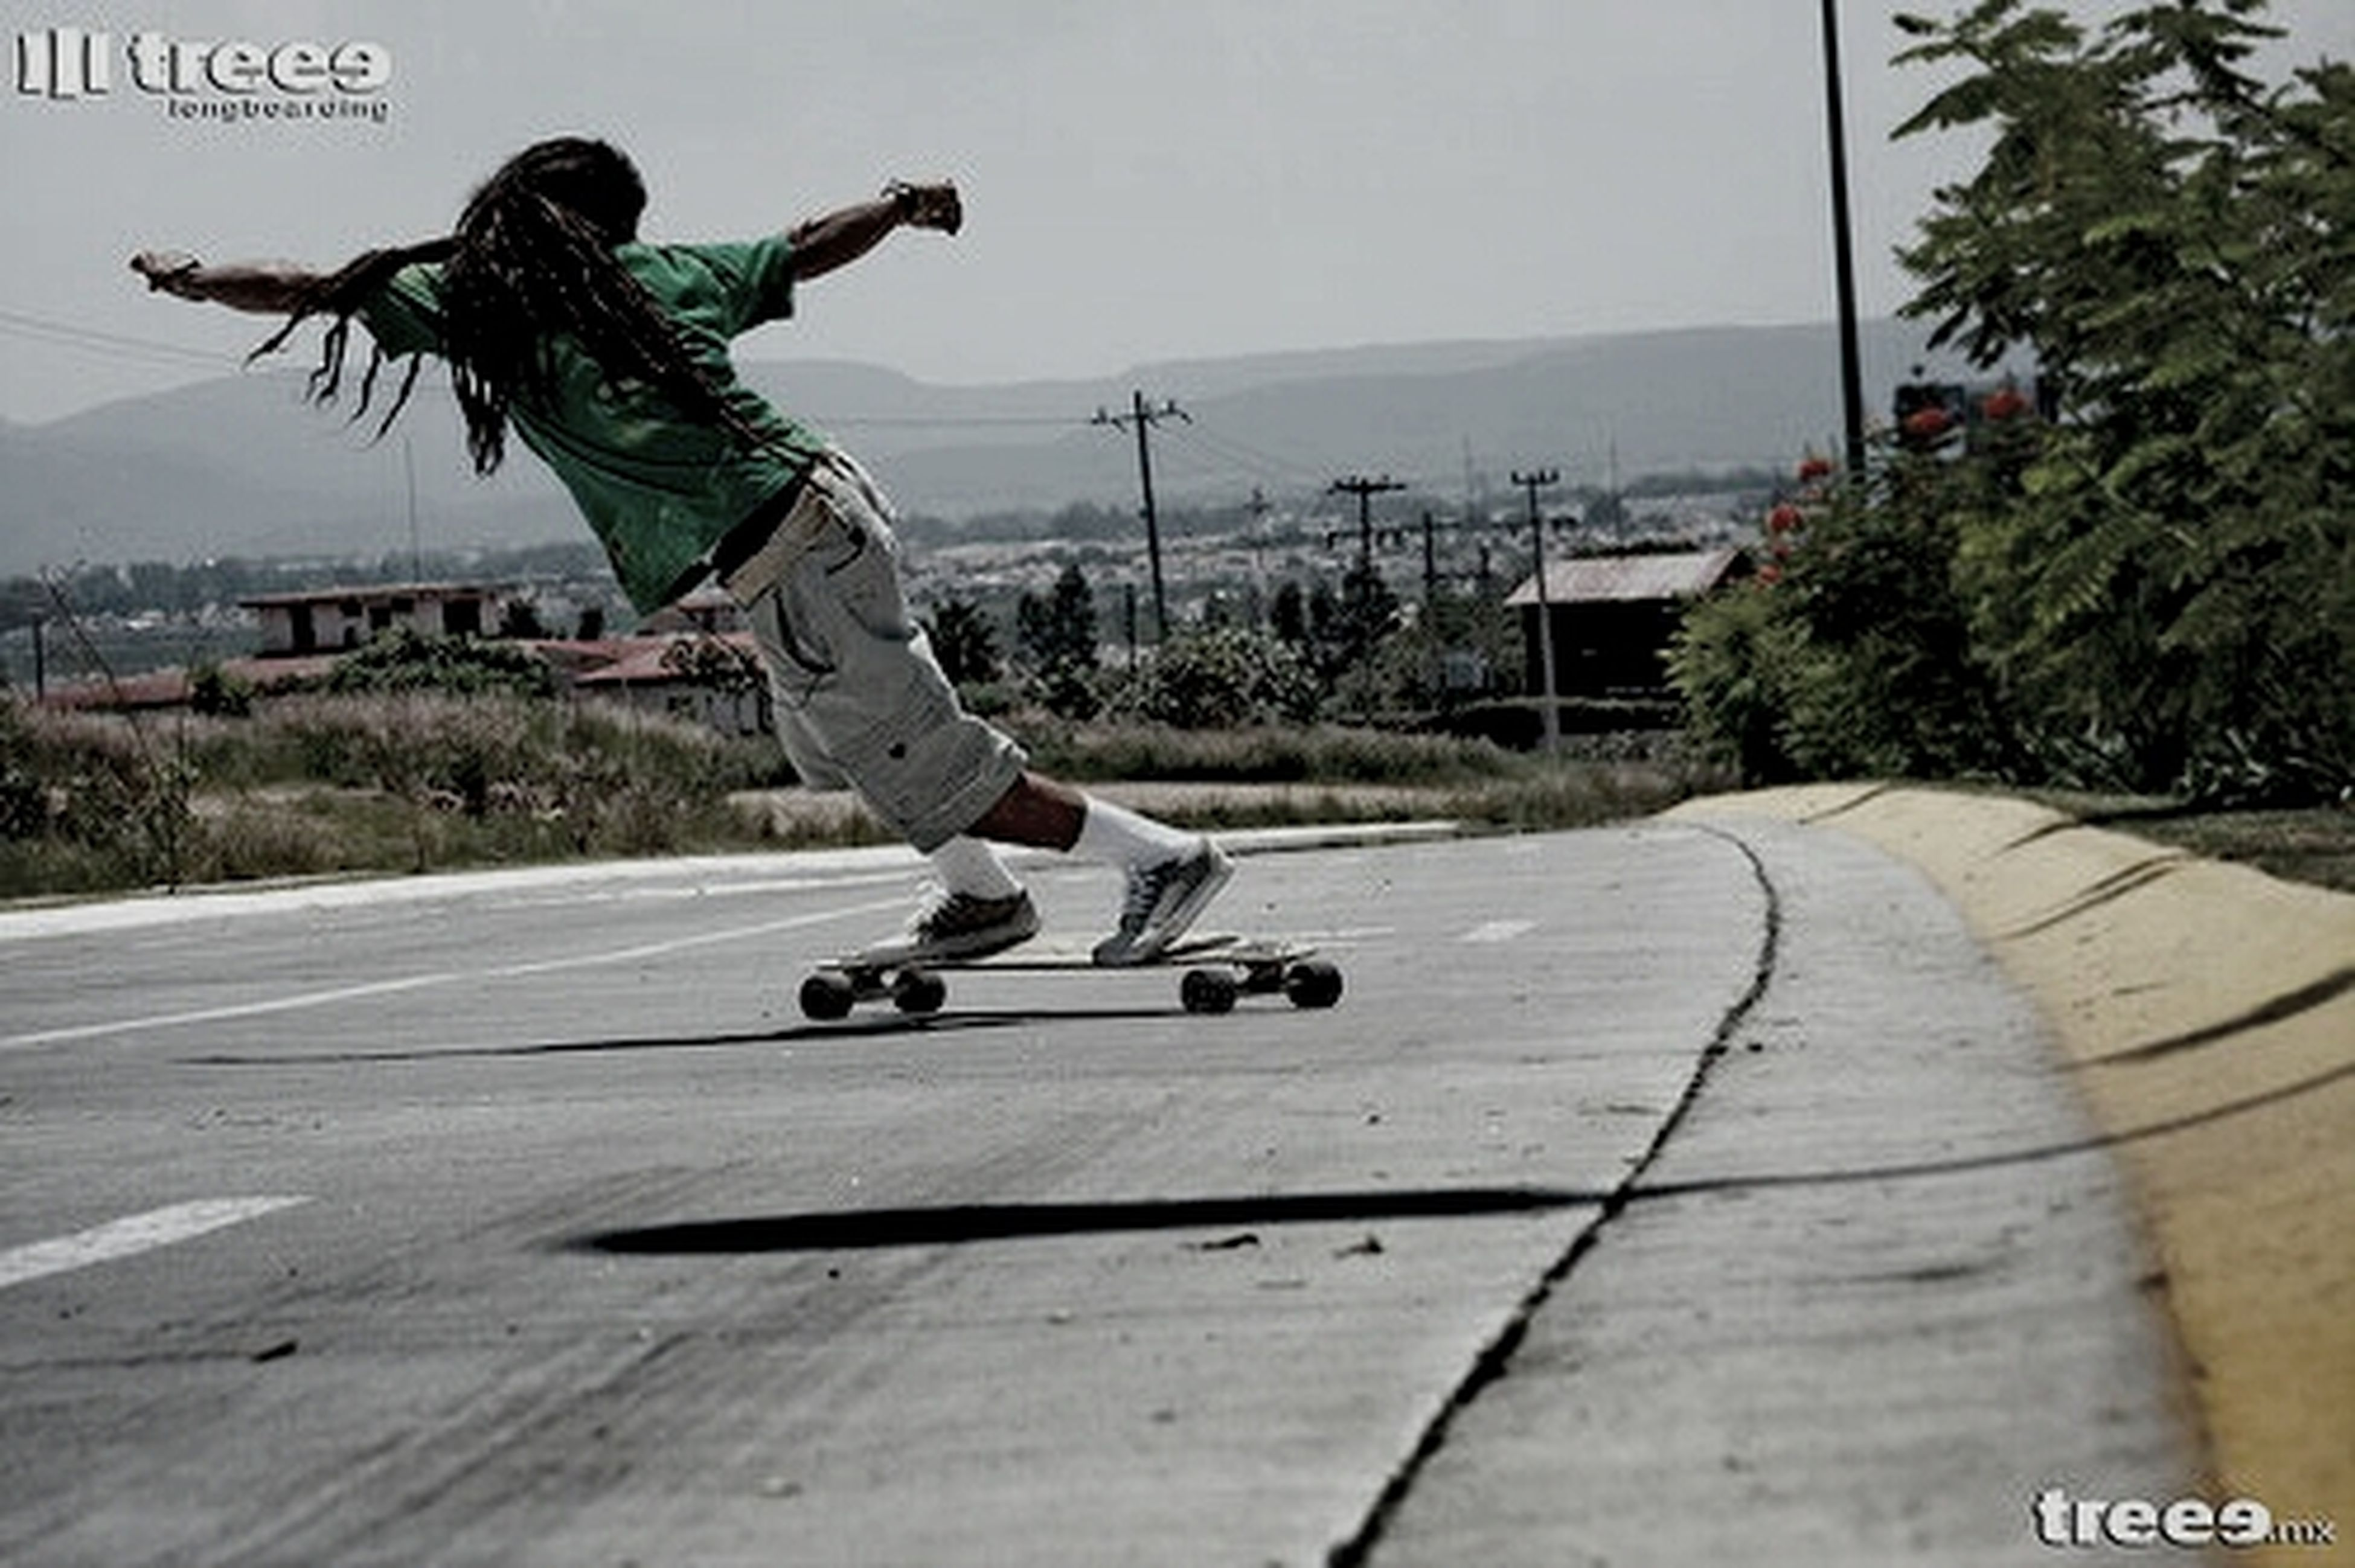 lifestyles, leisure activity, full length, men, skill, skateboard, jumping, mid-air, sport, casual clothing, young adult, skateboarding, transportation, street, built structure, riding, building exterior, holding